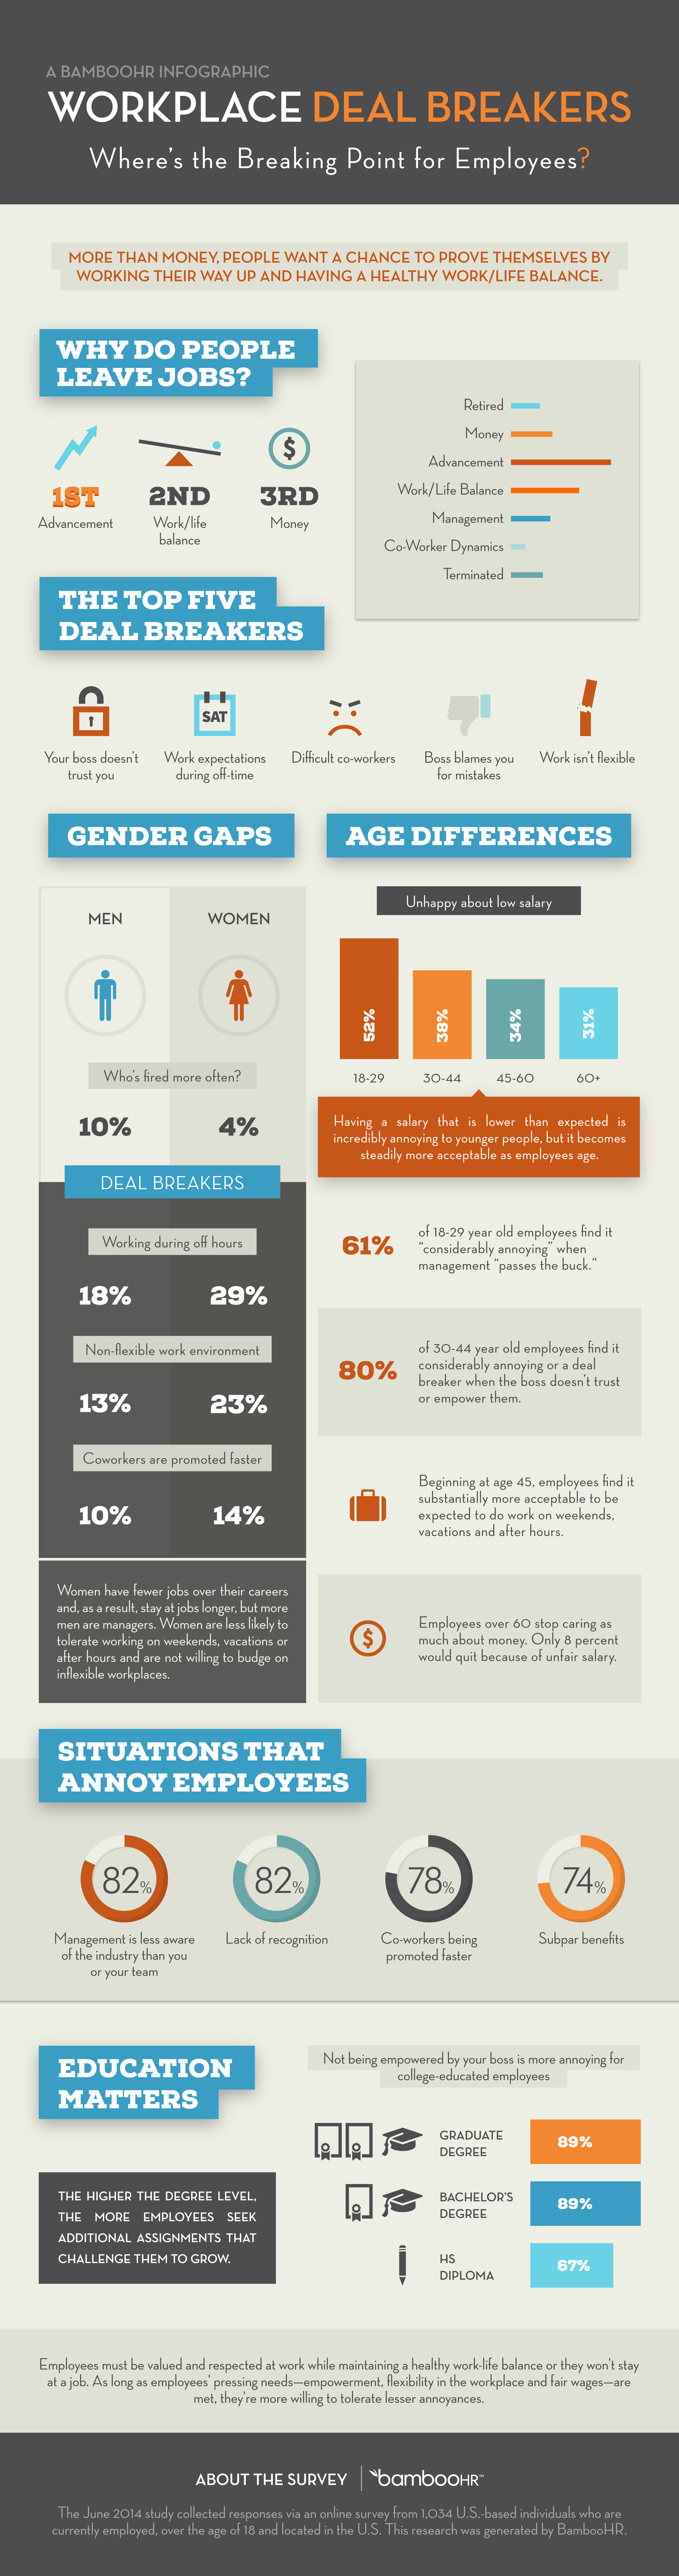 Top 5 Reasons Employees Leave Their Jobs (Infographic) | Inc.com